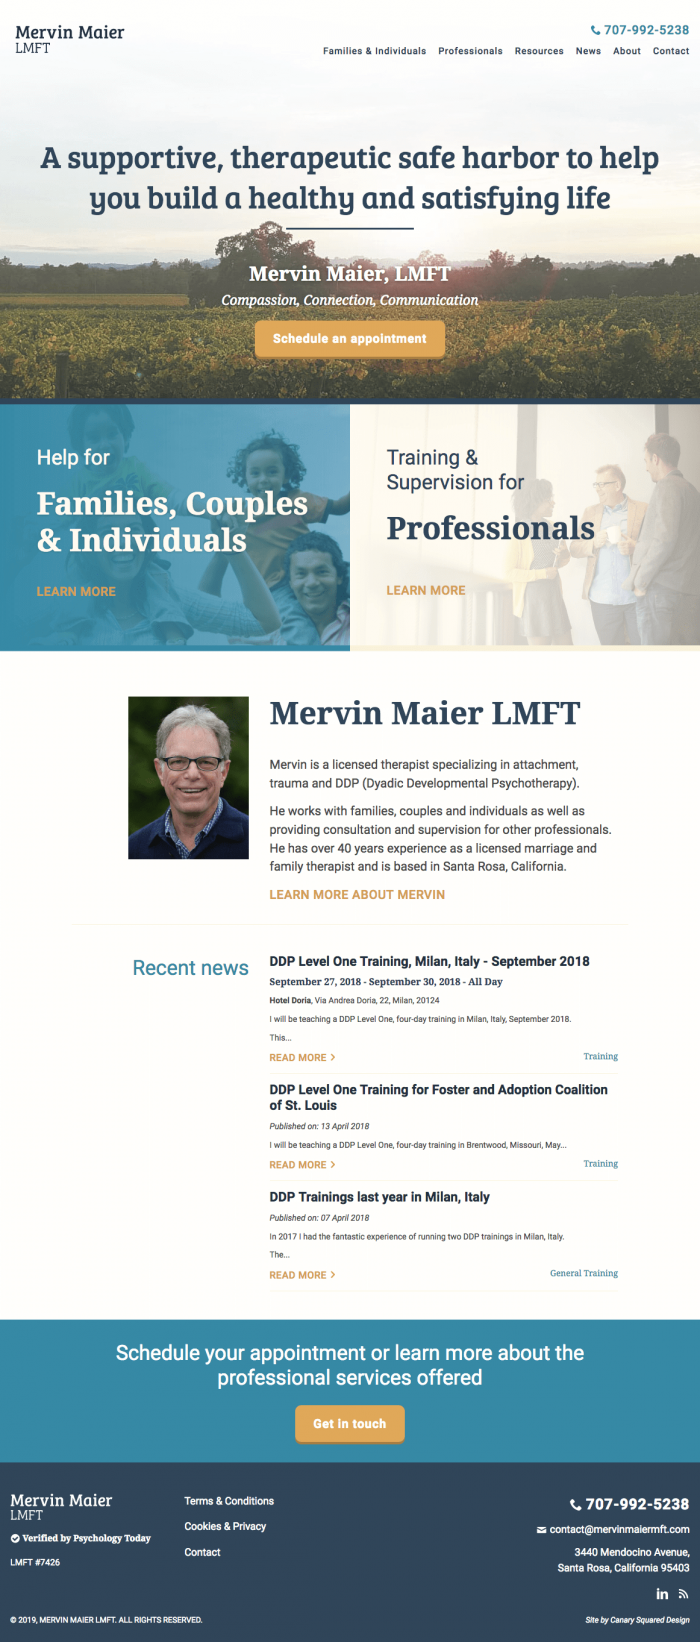 Mervin Maier LMFT - Psychotherapy and DDP, California